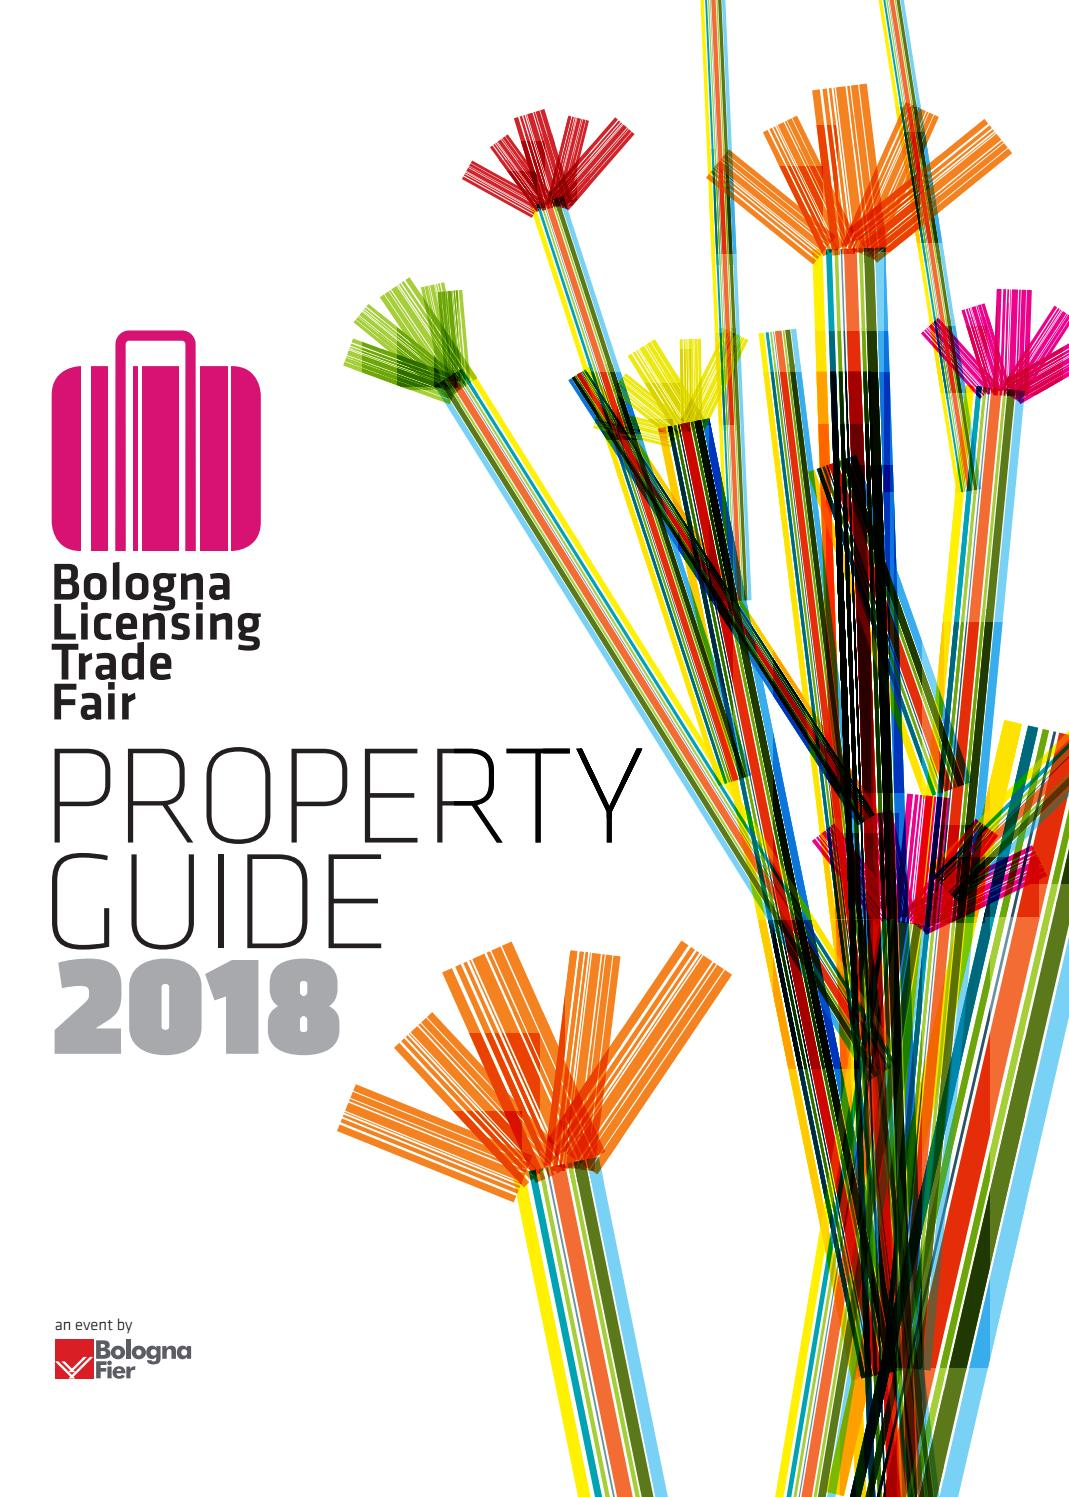 separation shoes b6023 73008 Property Guide 2018 by Bolognafiere S.p.A. - issuu